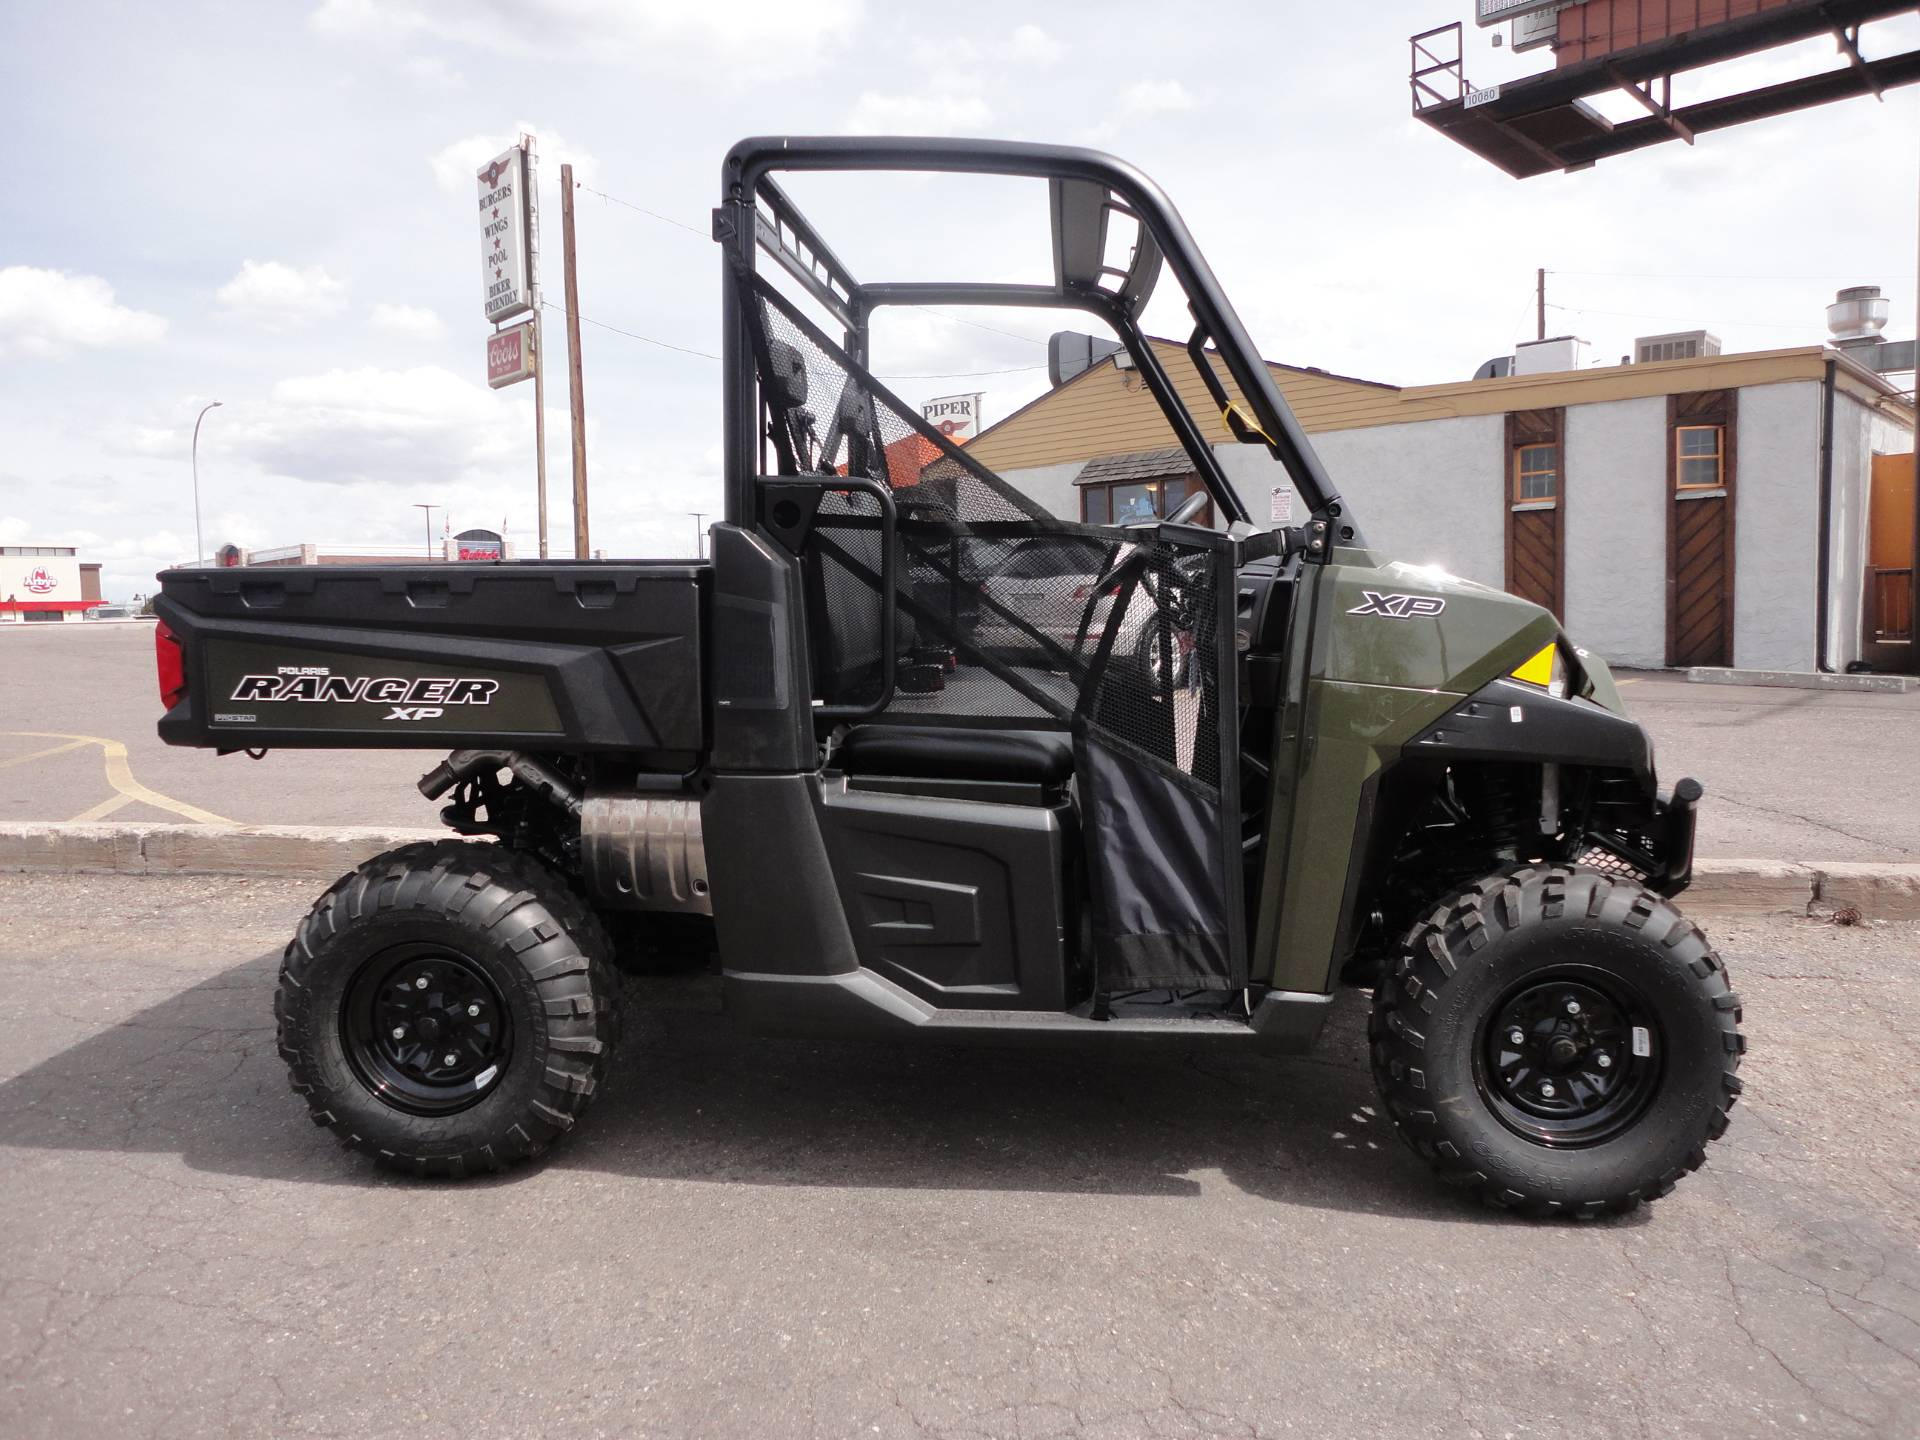 2019 Polaris Ranger XP 900 EPS in Denver, Colorado - Photo 5